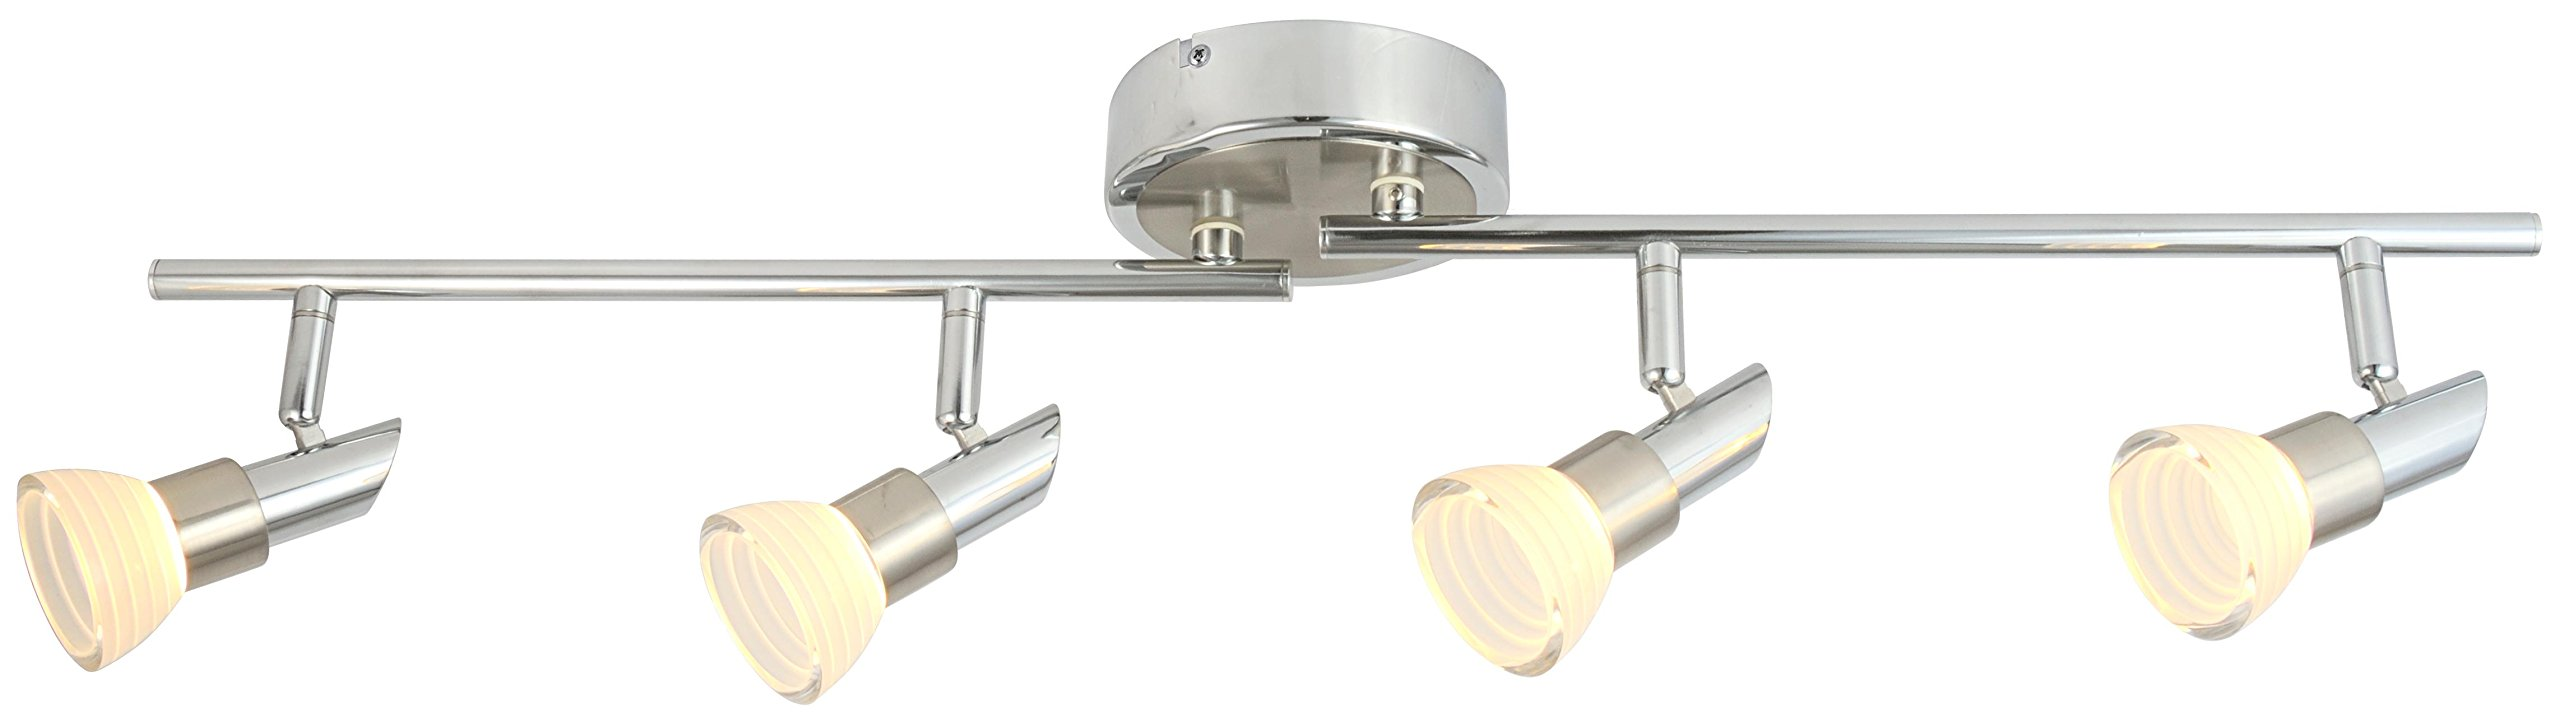 LED Adjustable Chrome Acrylic Spot light/ Track Lighting Ceiling light/Wall Sconce (4 Light)